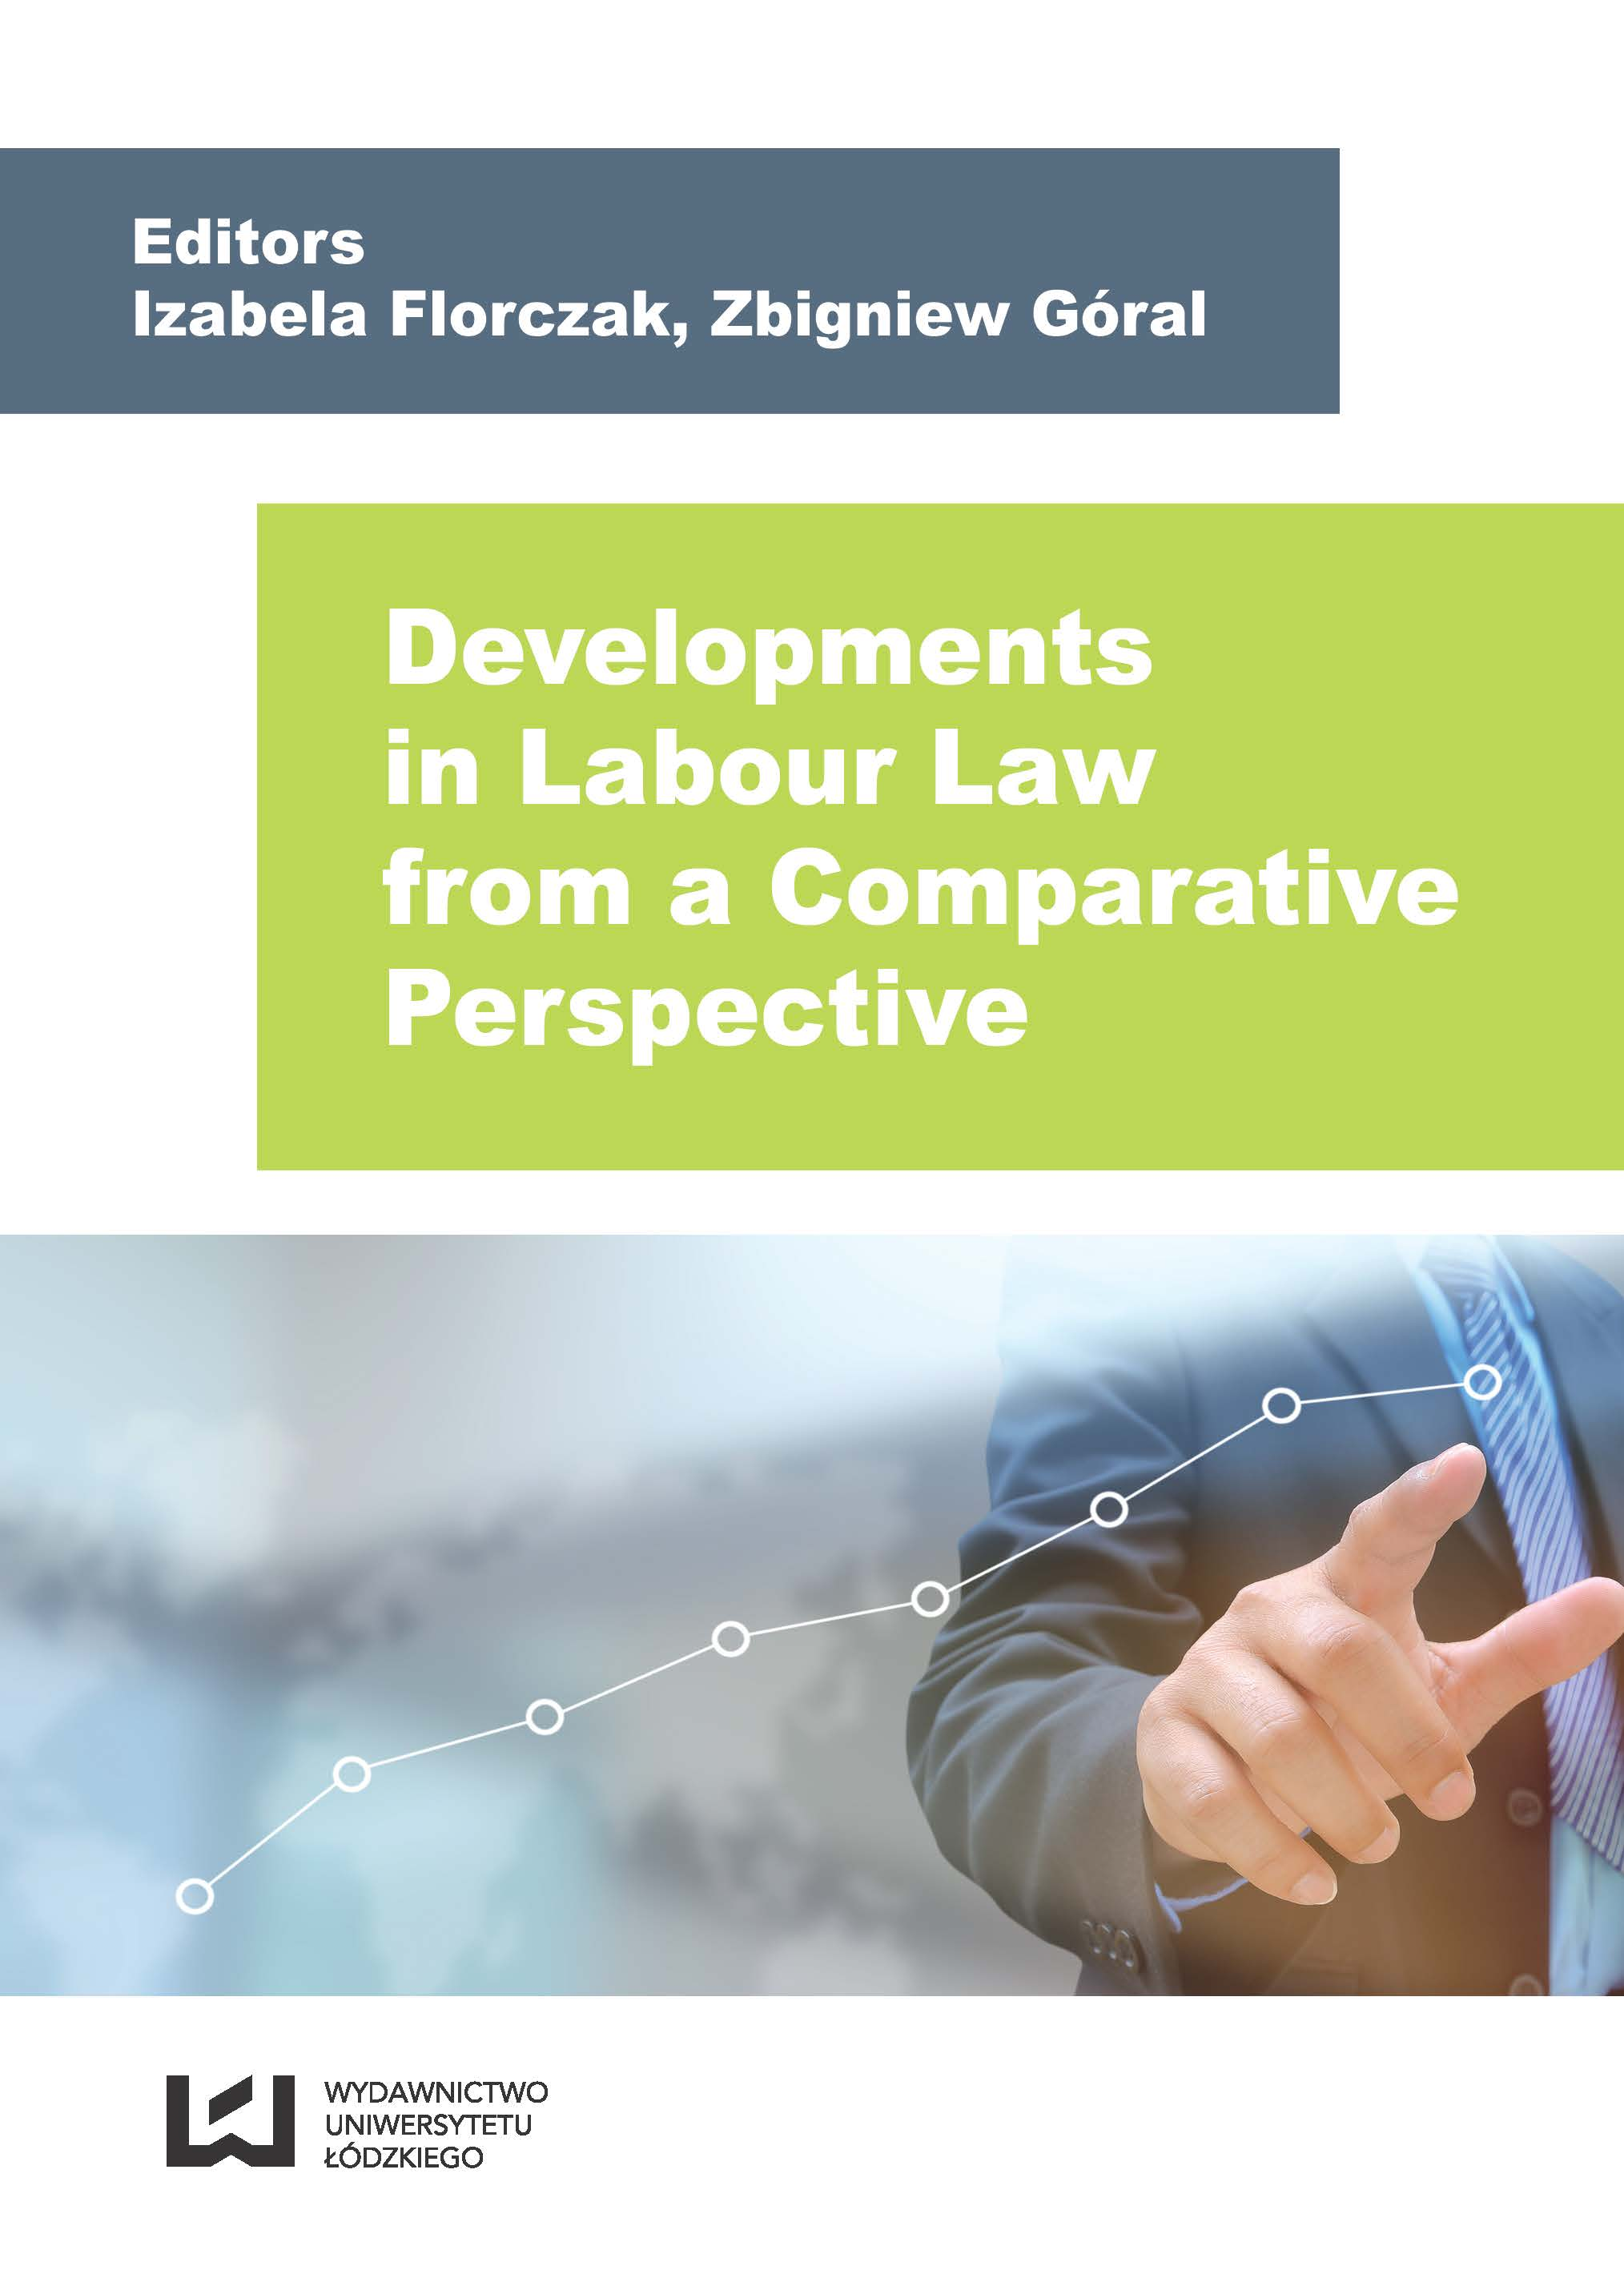 Developments in Labour Law from a Comparative Perspective